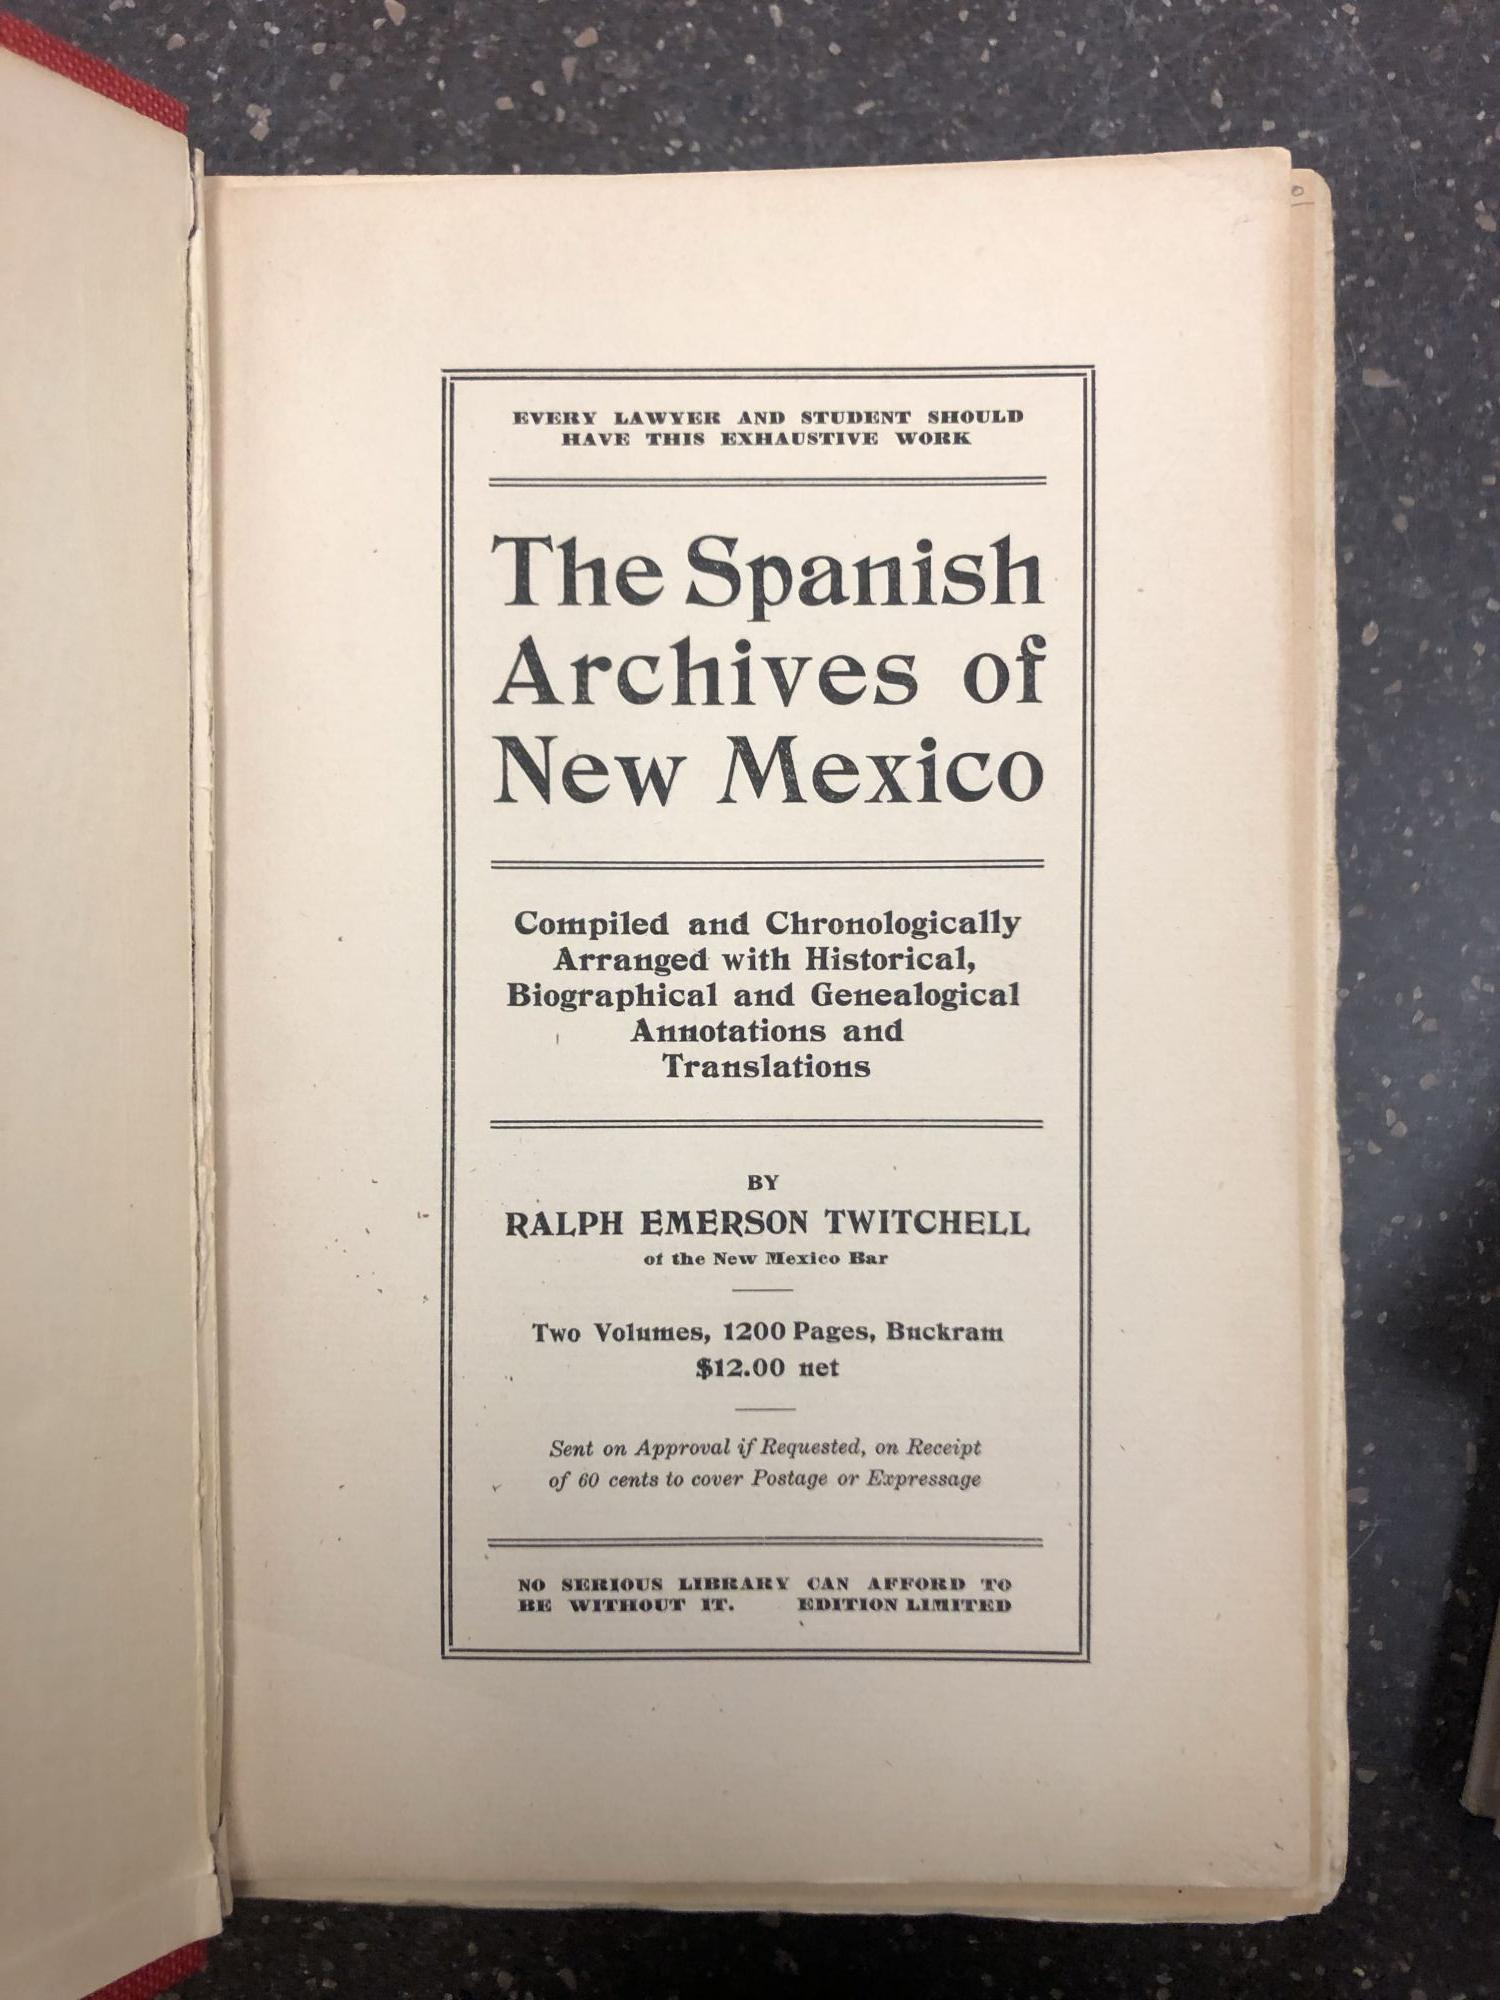 THE SPANISH ARCHIVES OF NEW MEXICO [2 VOLUMES]. Ralph Emerson Twitchell.